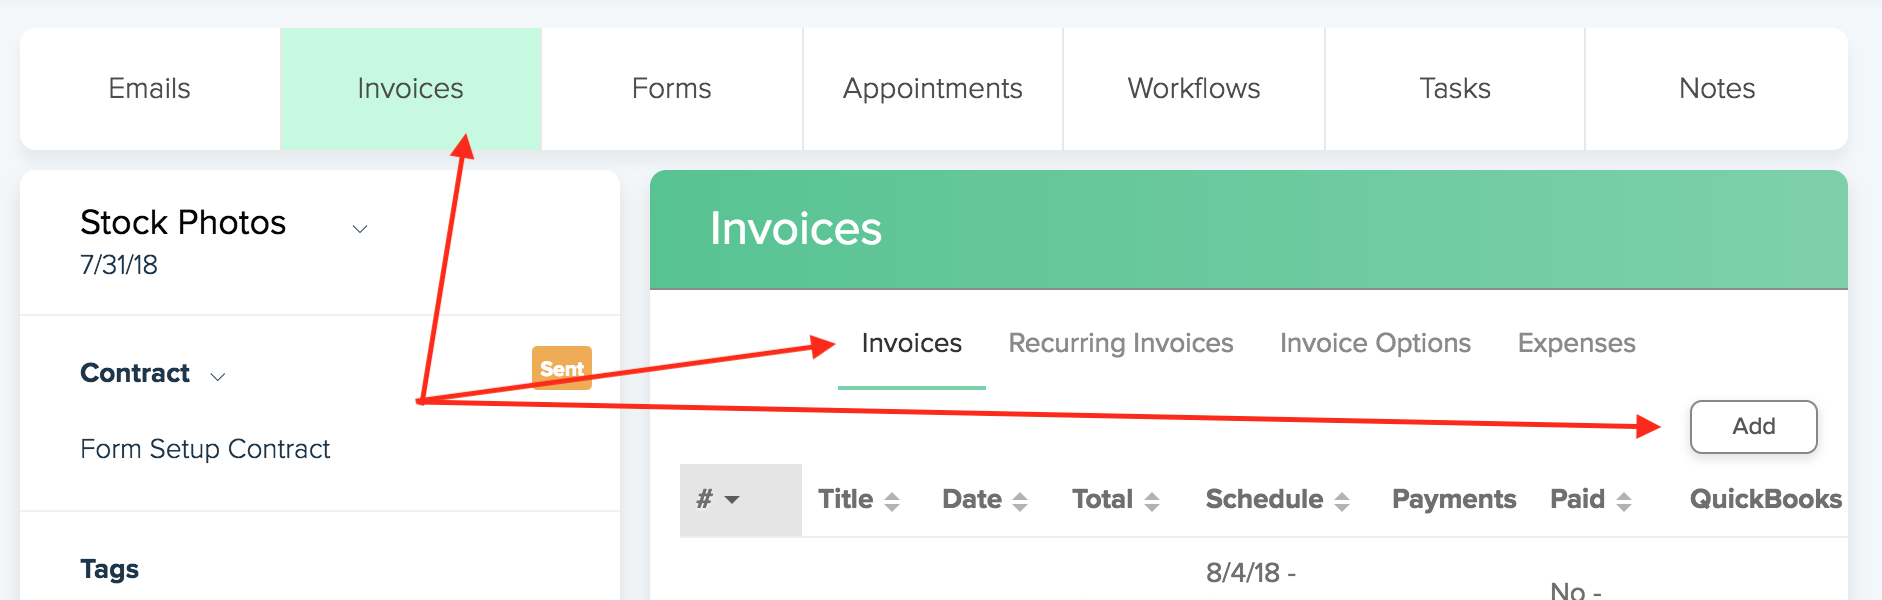 How Do I Send An Invoice Dubsado Help Center - How to do an invoice